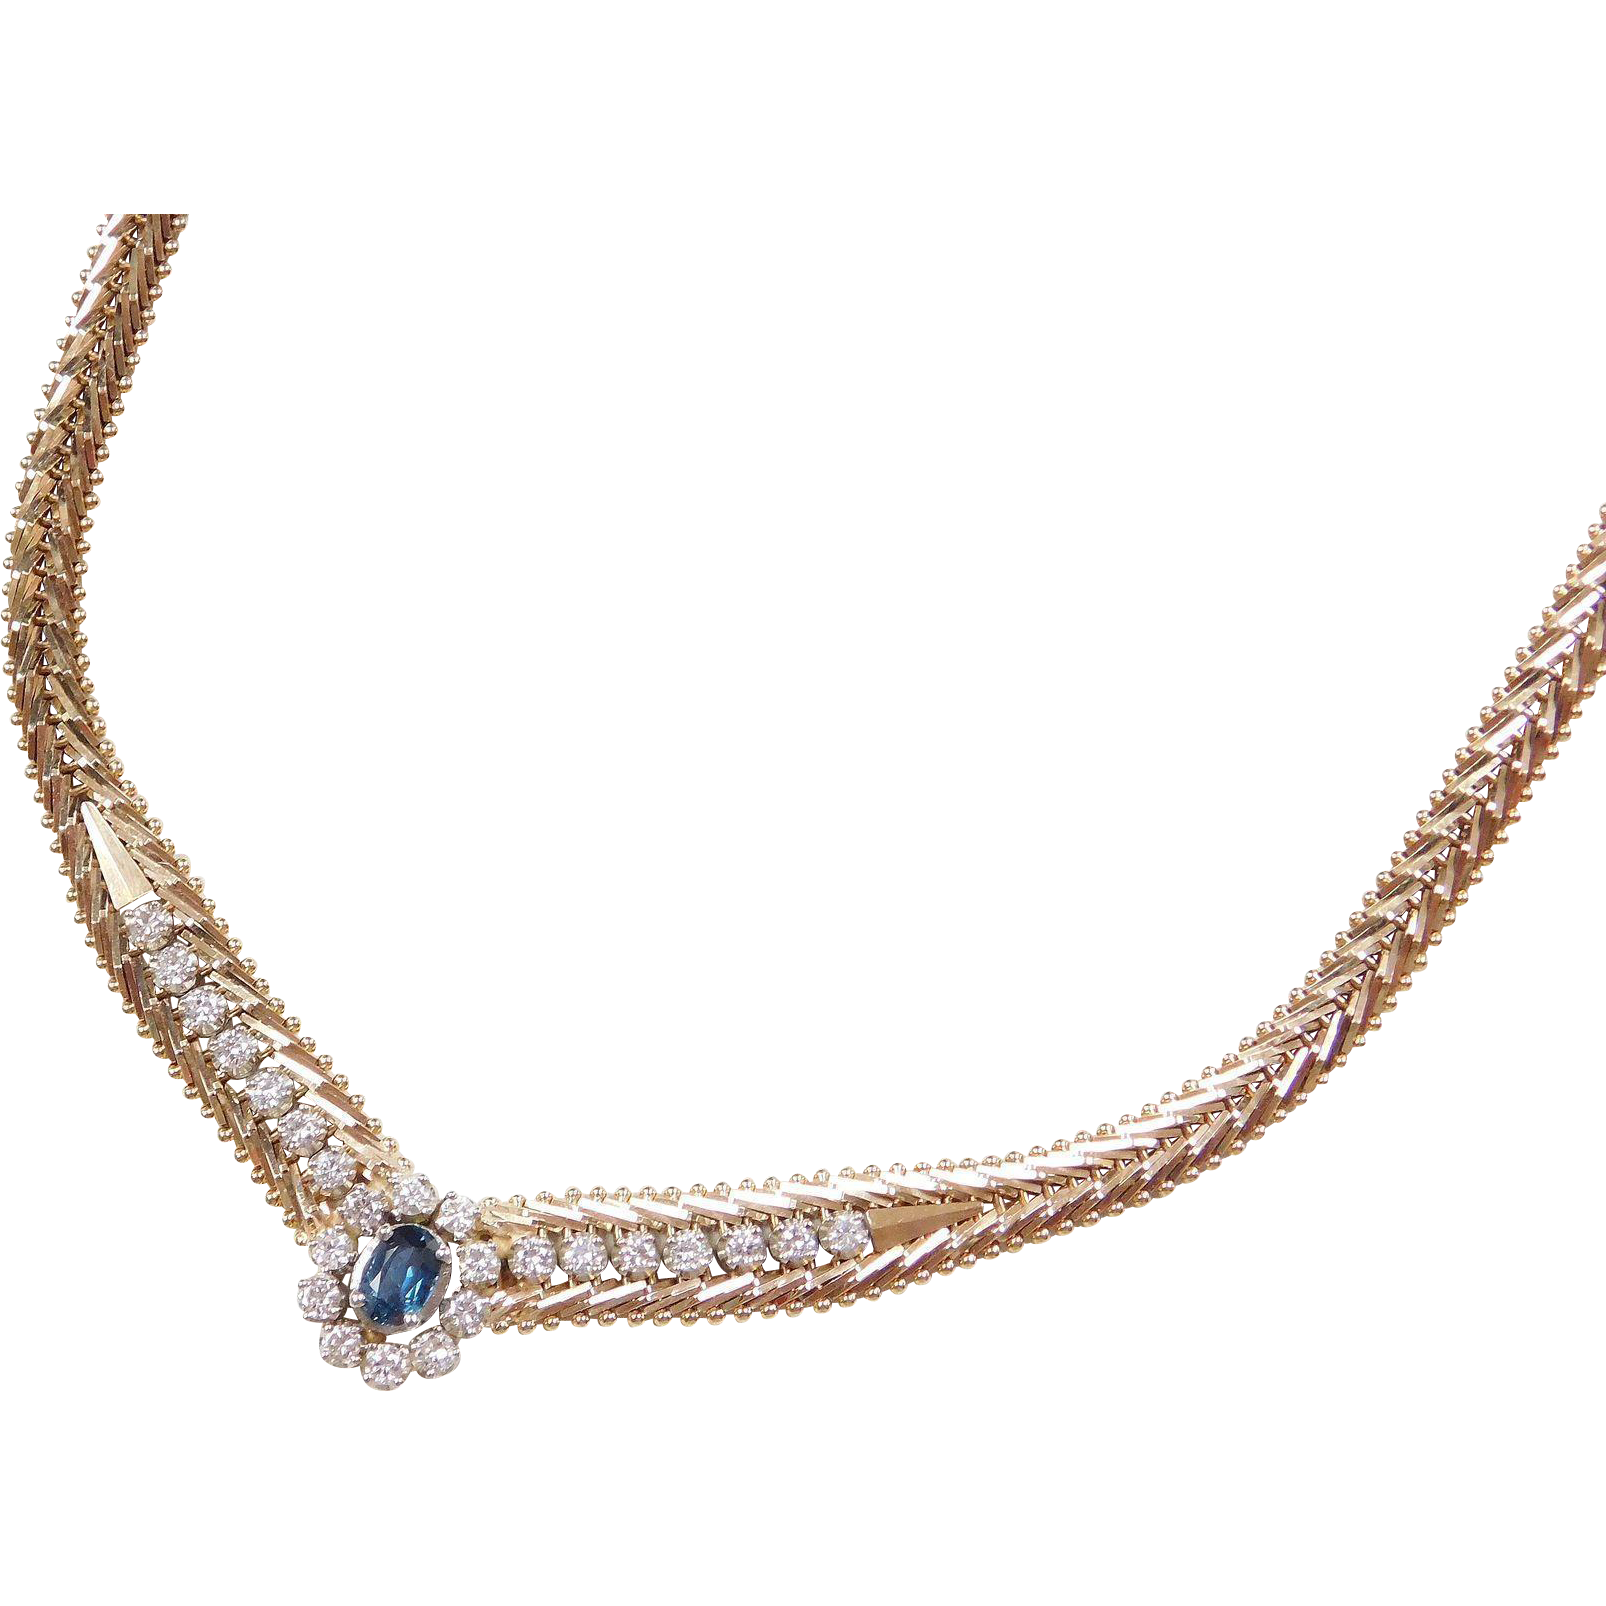 Beautiful 14k Gold 1 44 ctw Sapphire and Diamond Necklace 17 1 4